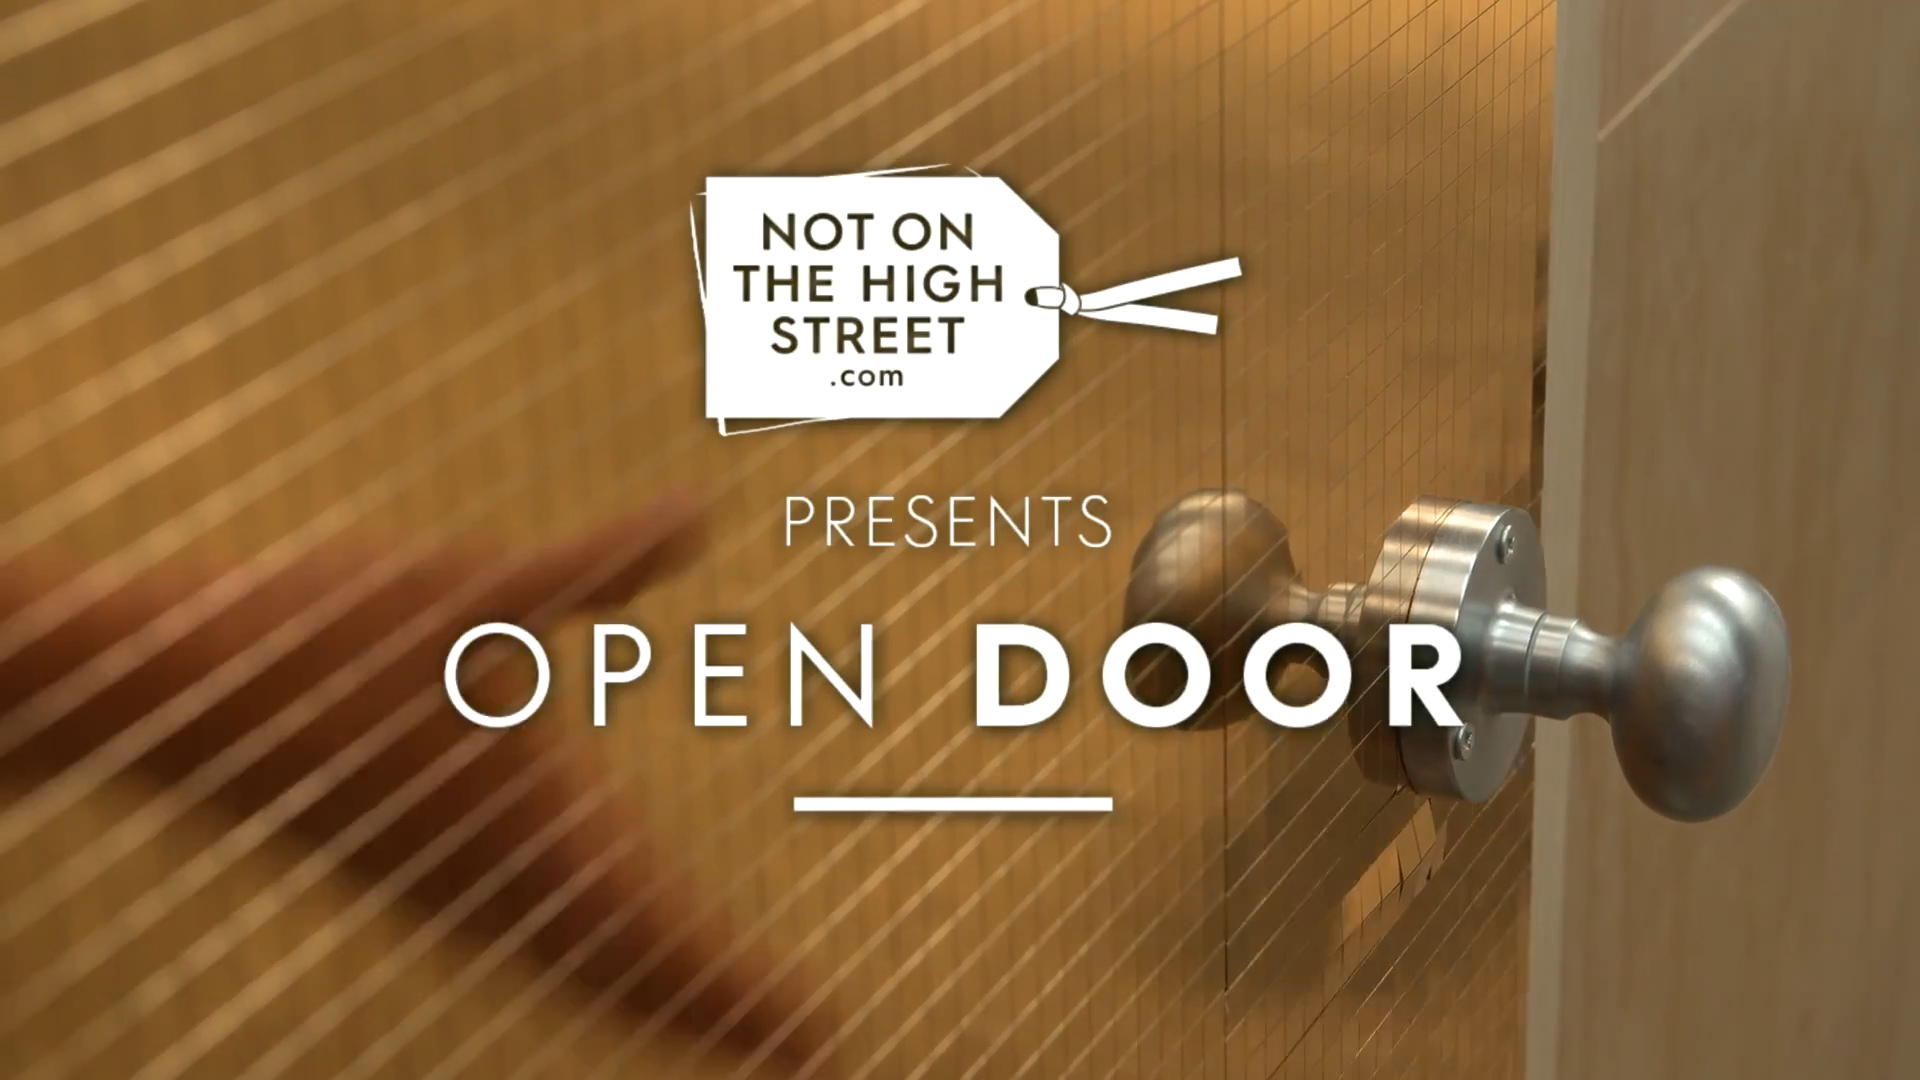 Notonthehighstreet.com – Open Door